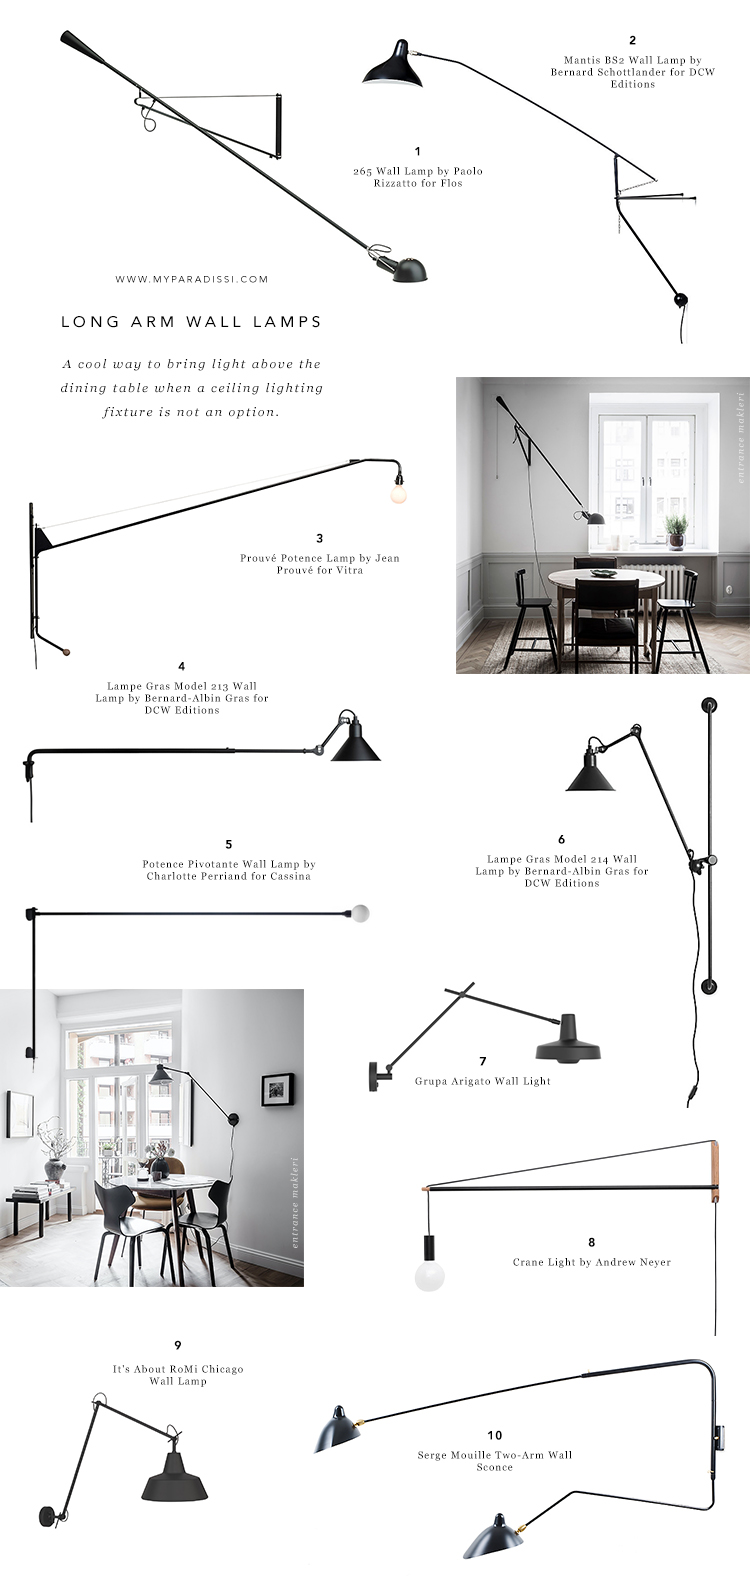 How to light a dining room without a ceiling light, alternative dining room lighting ideas, lighting above the dining table, swing arm wall lamp above the dining table, long arm wall lamp in the dining room